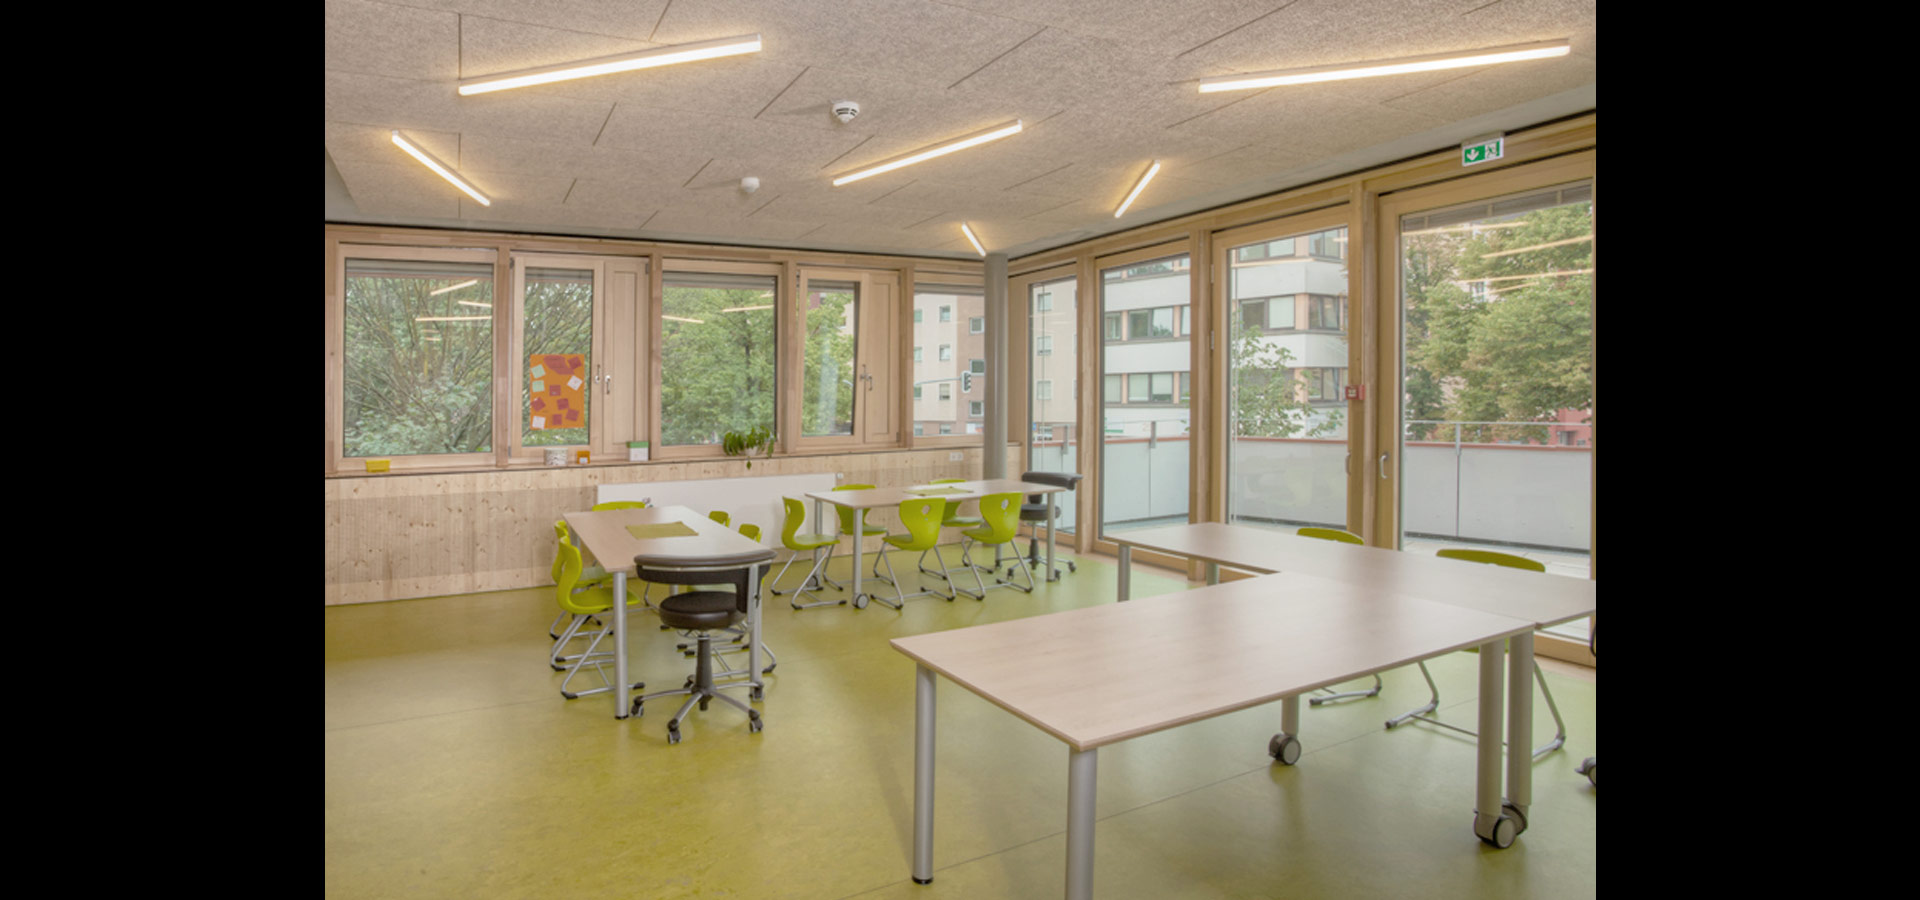 Led Lichtband Deckenbeleuchtung Led Lighting With Light Band For Daycare Centre By Luxsystem